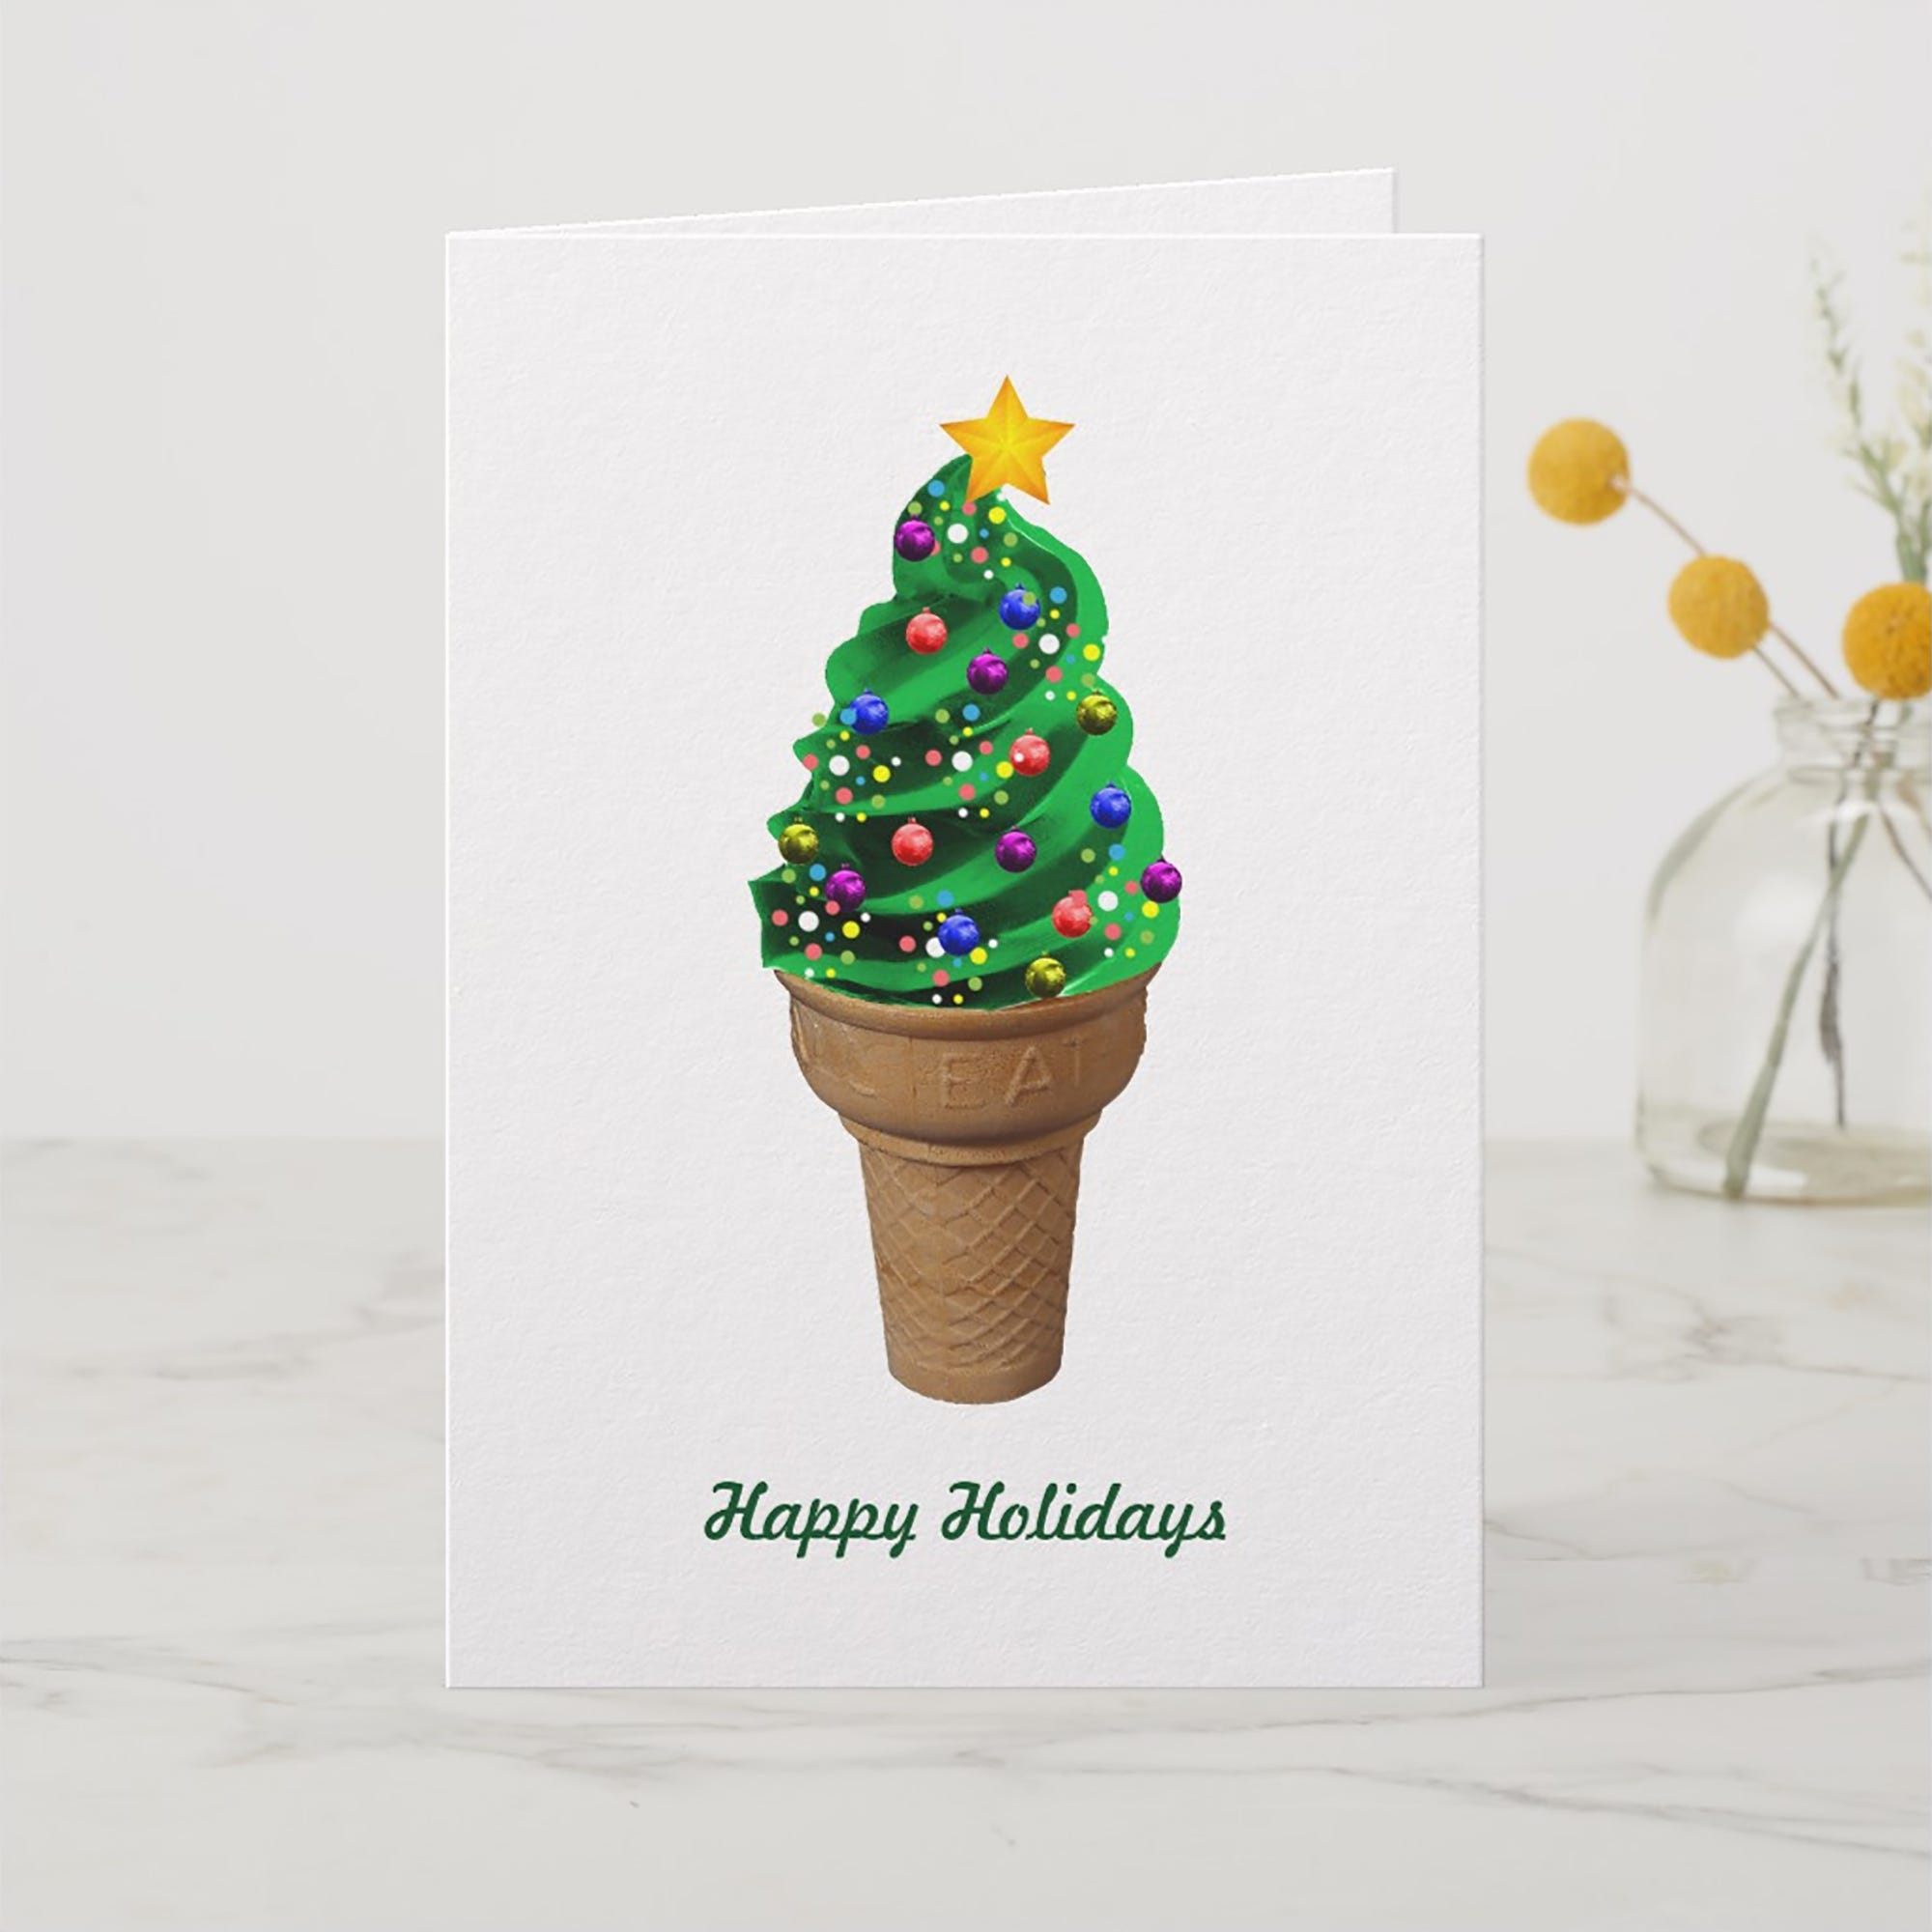 Best Holiday Cards Online For Christmas New Year 2018